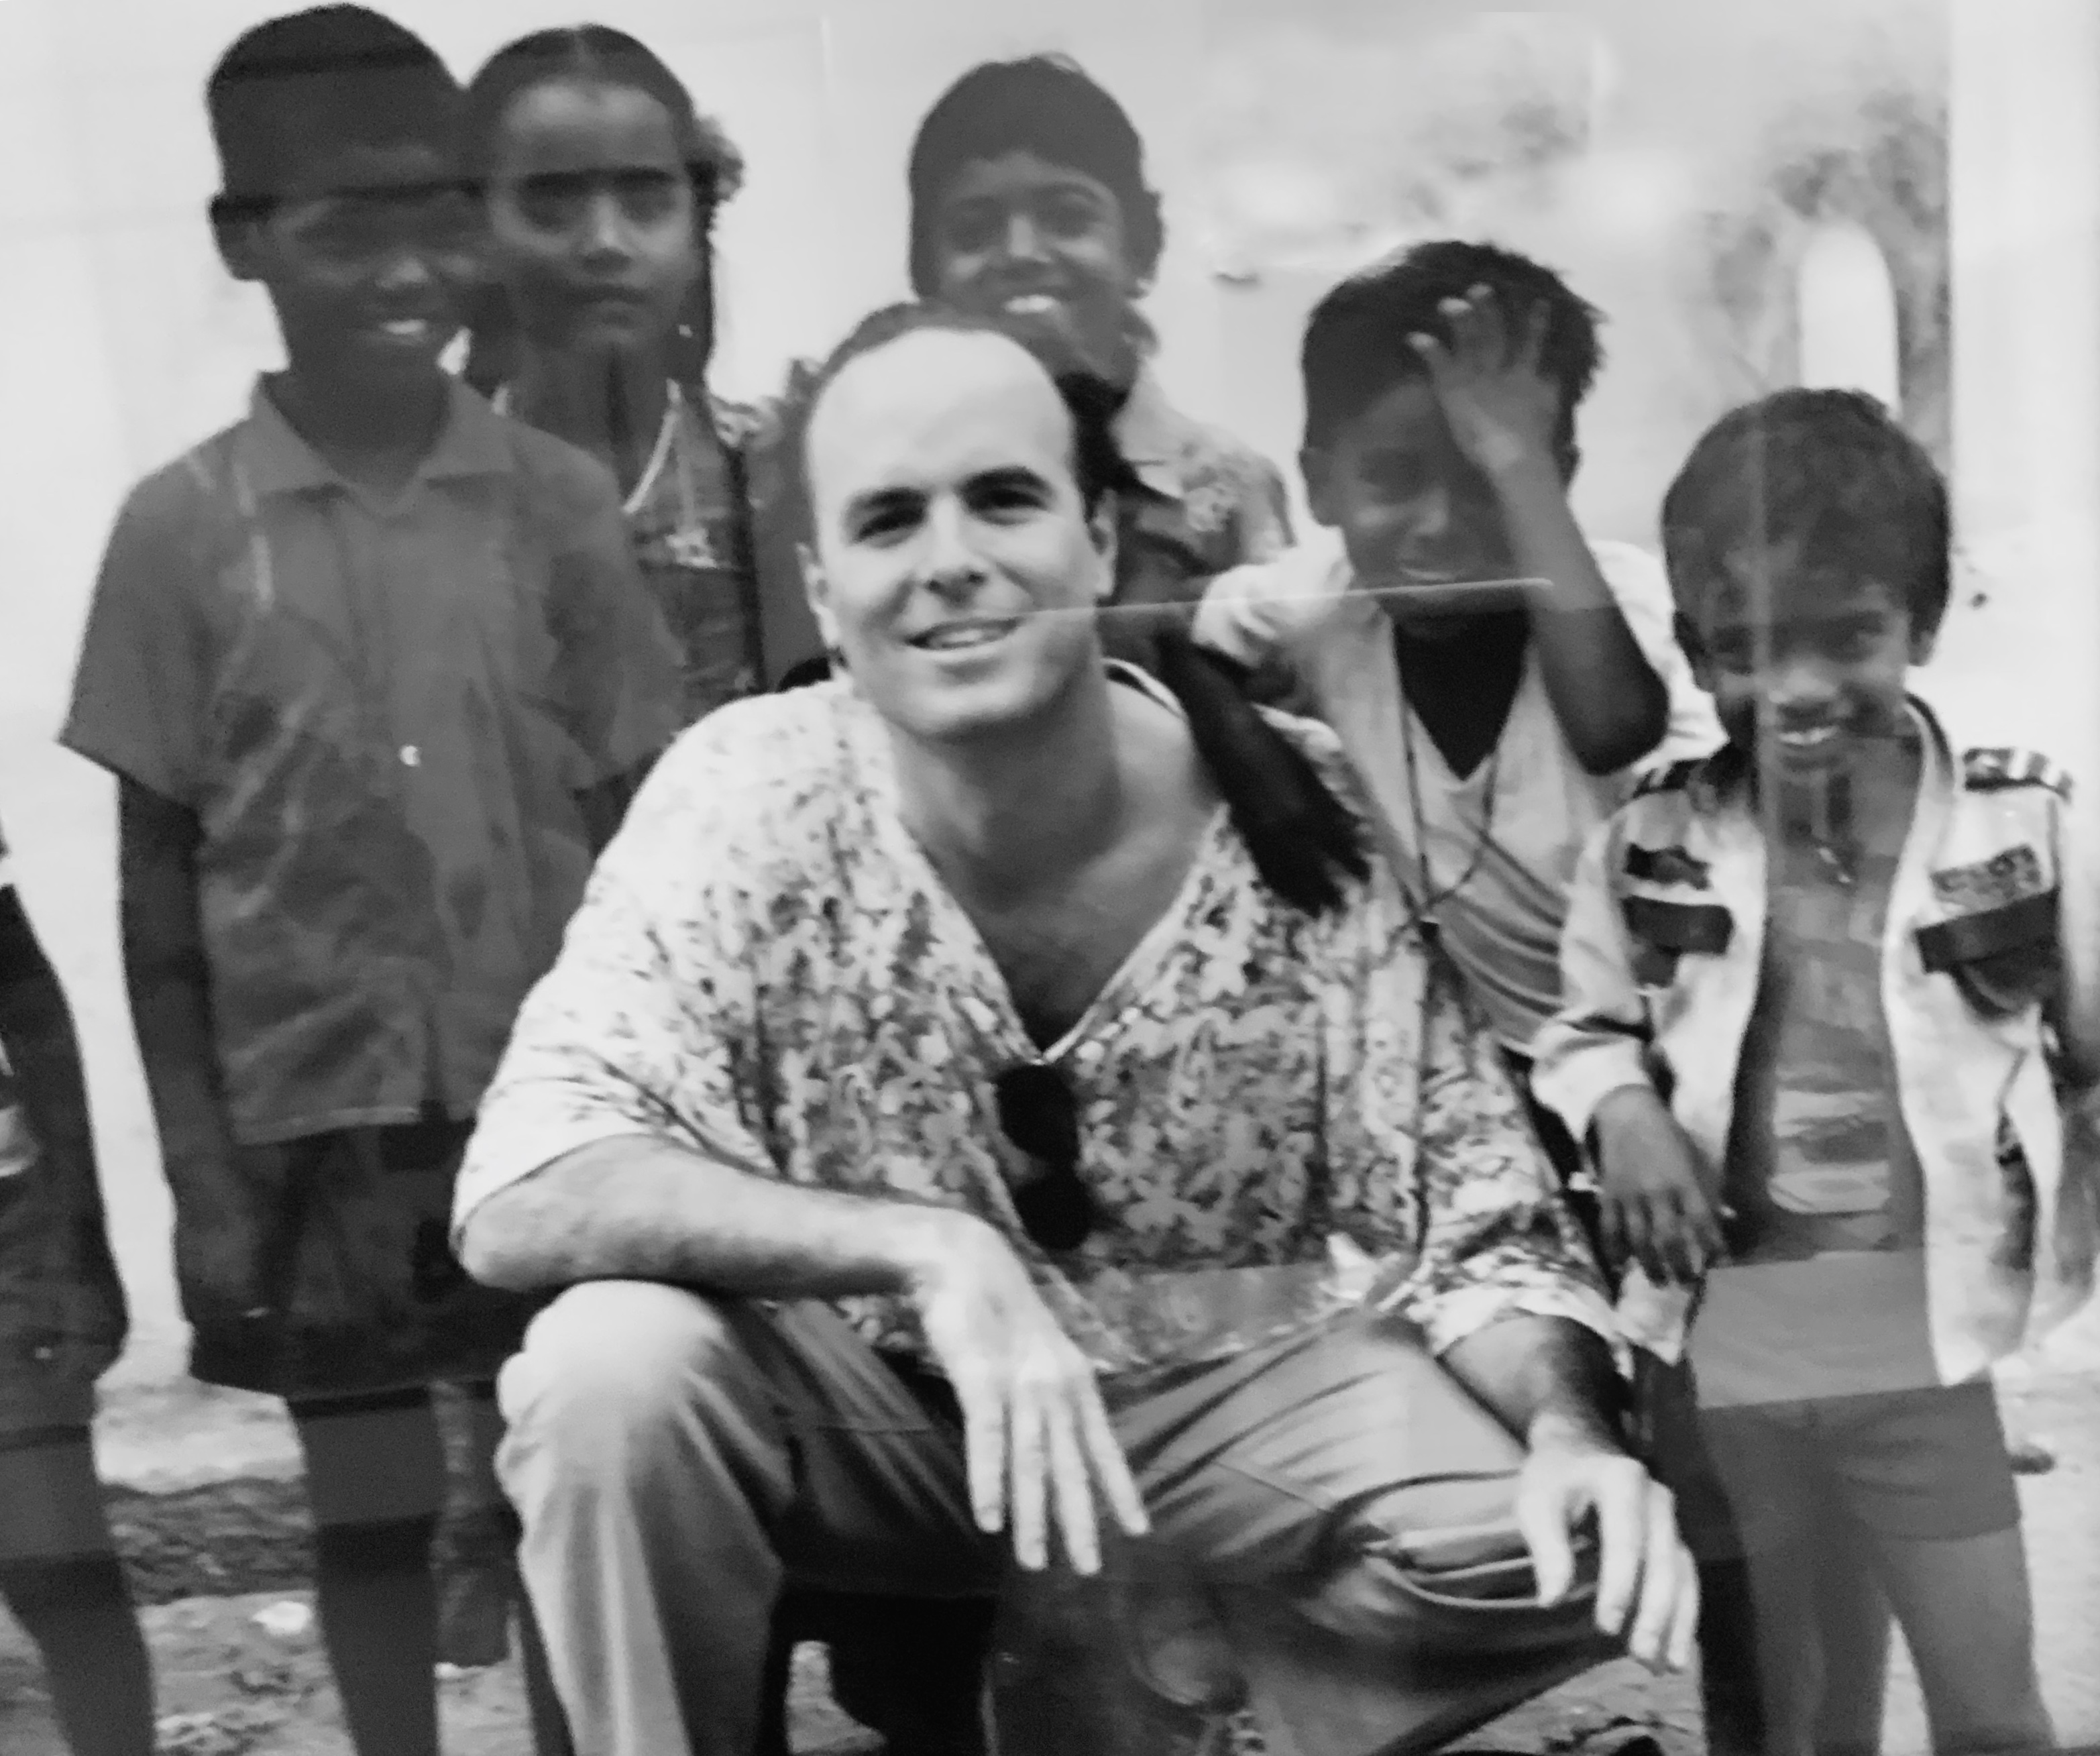 Dr Weiss with kids in India